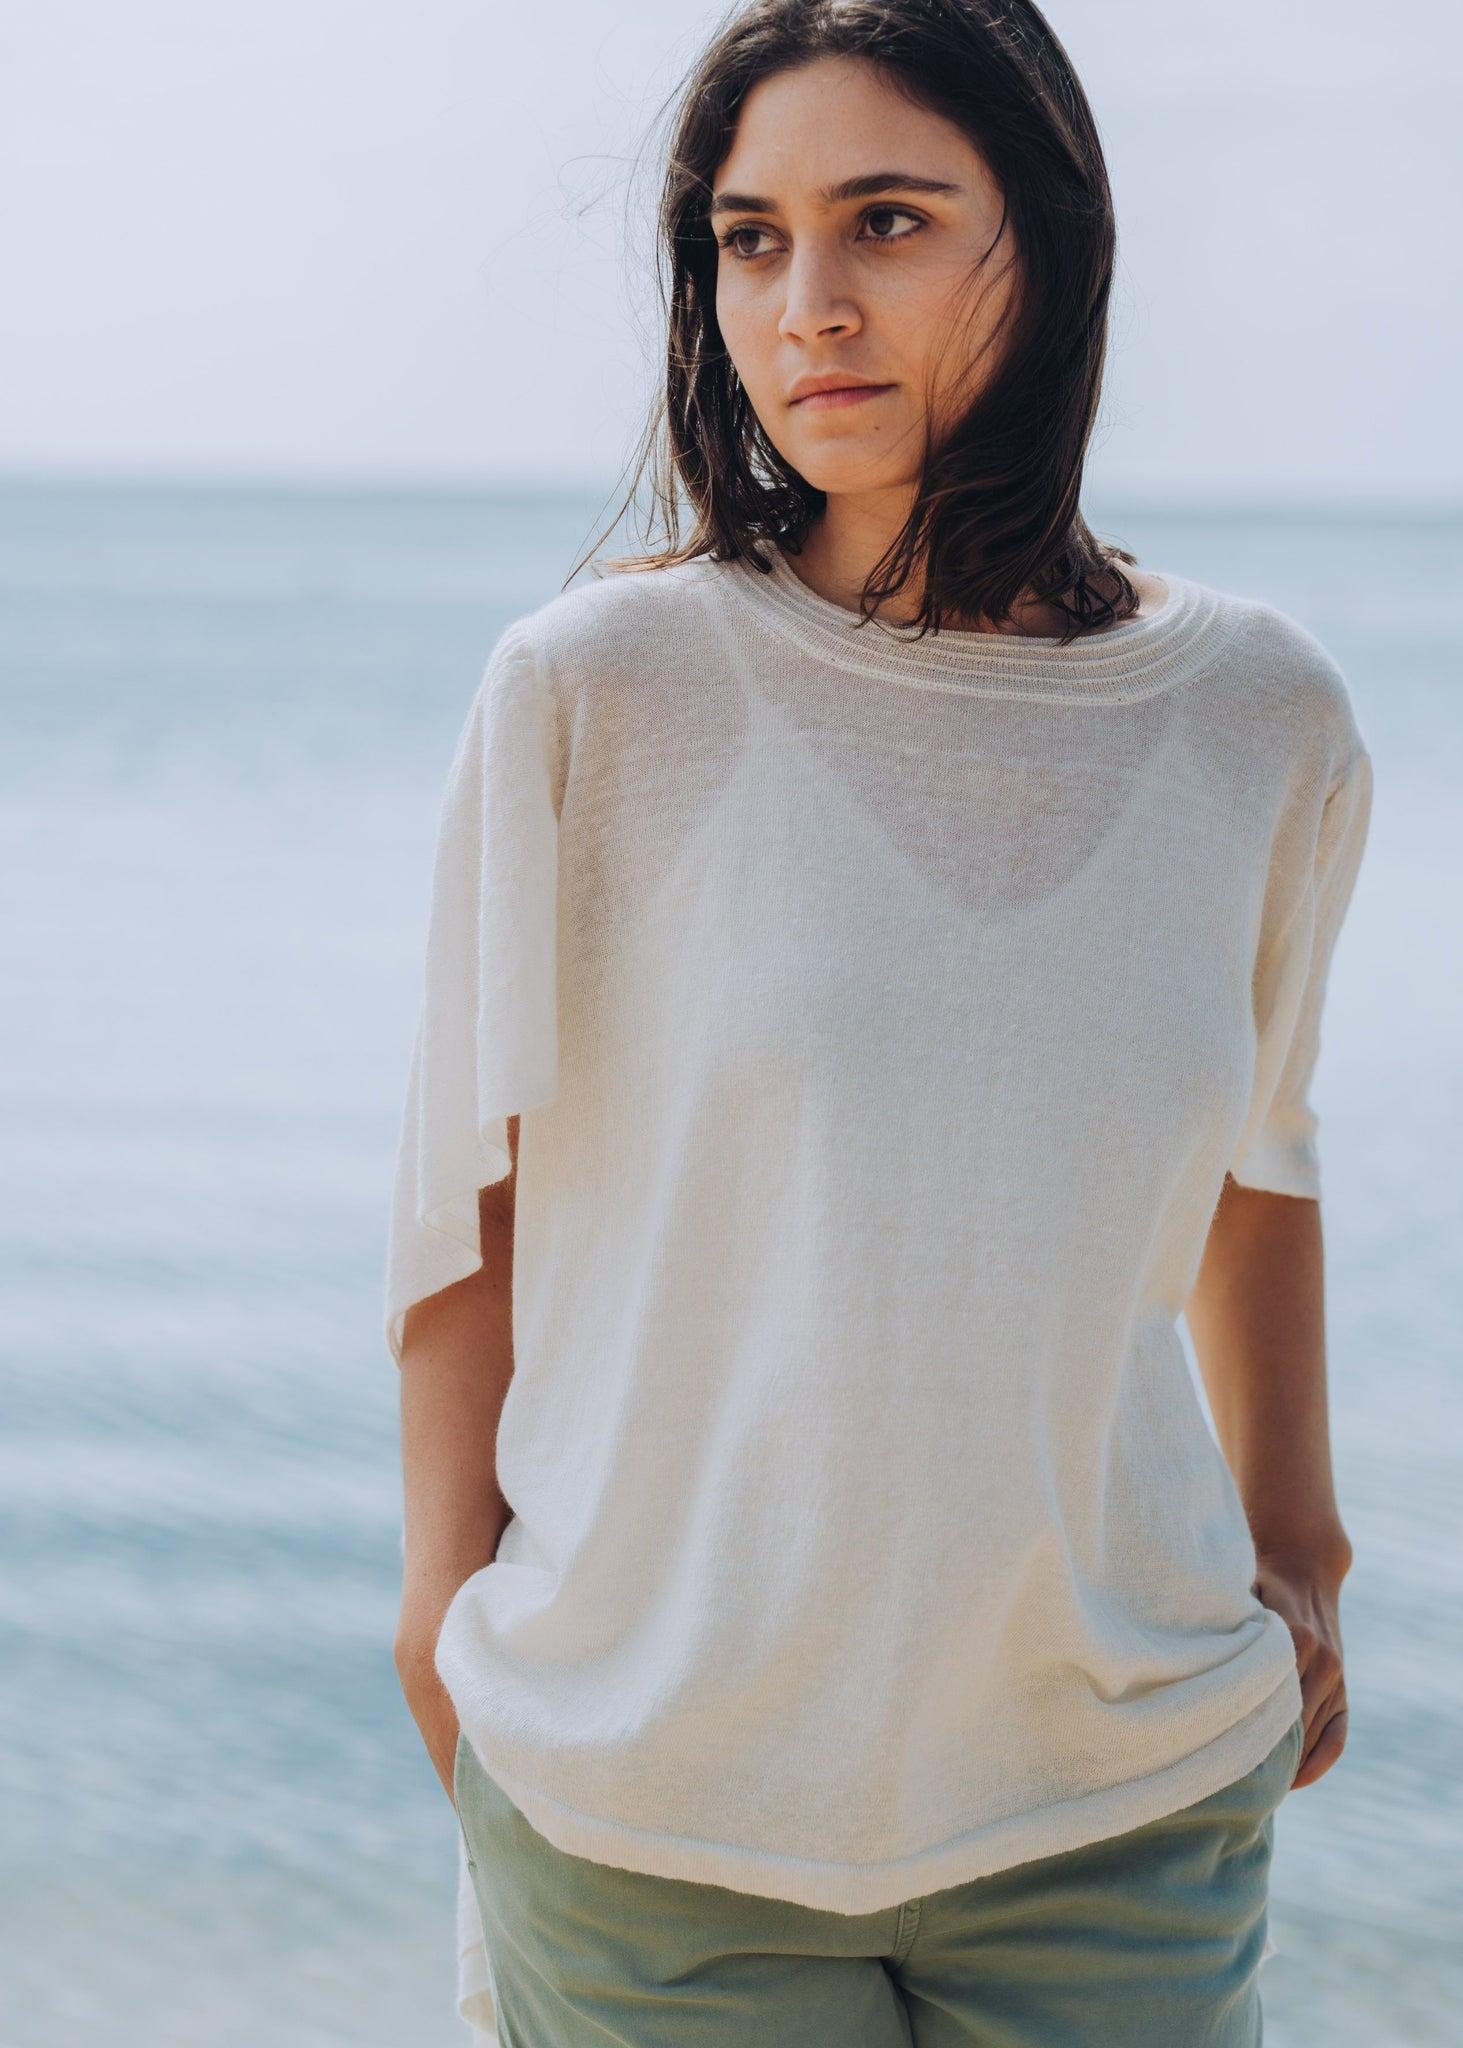 ANMIKA | Our fine linen mix Poncho